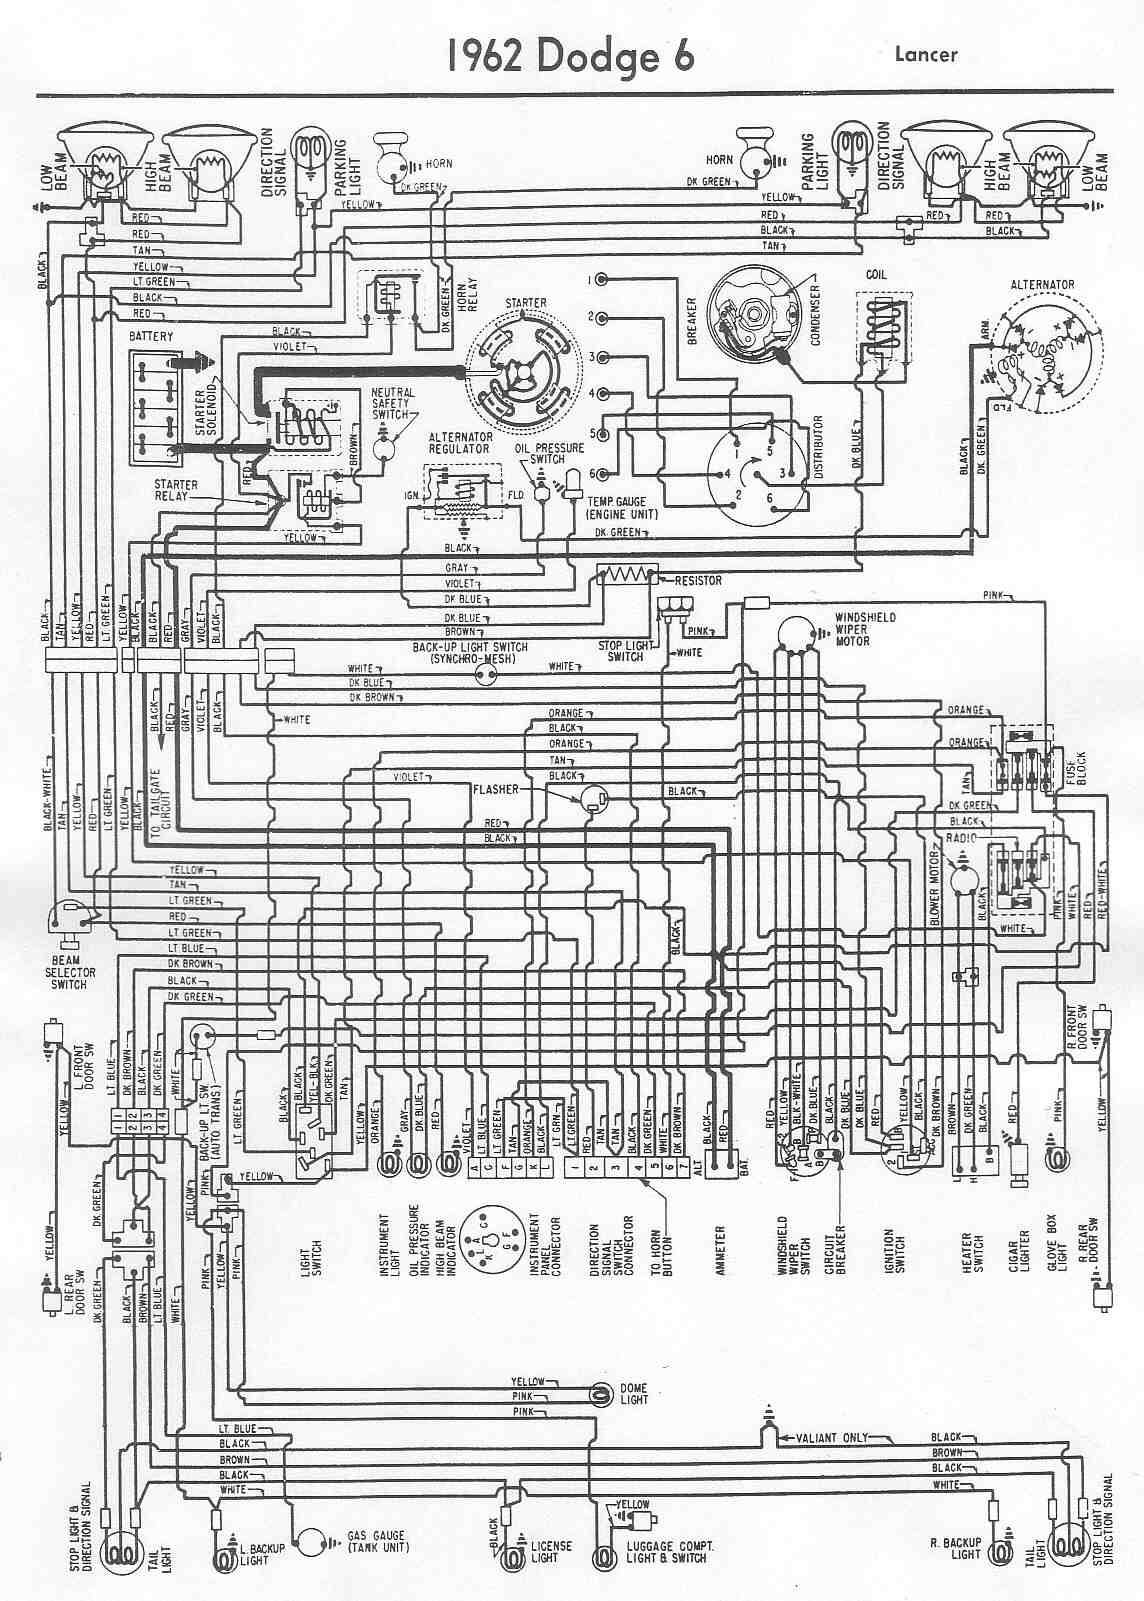 Ford Alternator Wiring Diagrams 1997 Electrical Diagram Schematics Additionally 1965 F100 Dodge Lancer Services U2022 Regulator